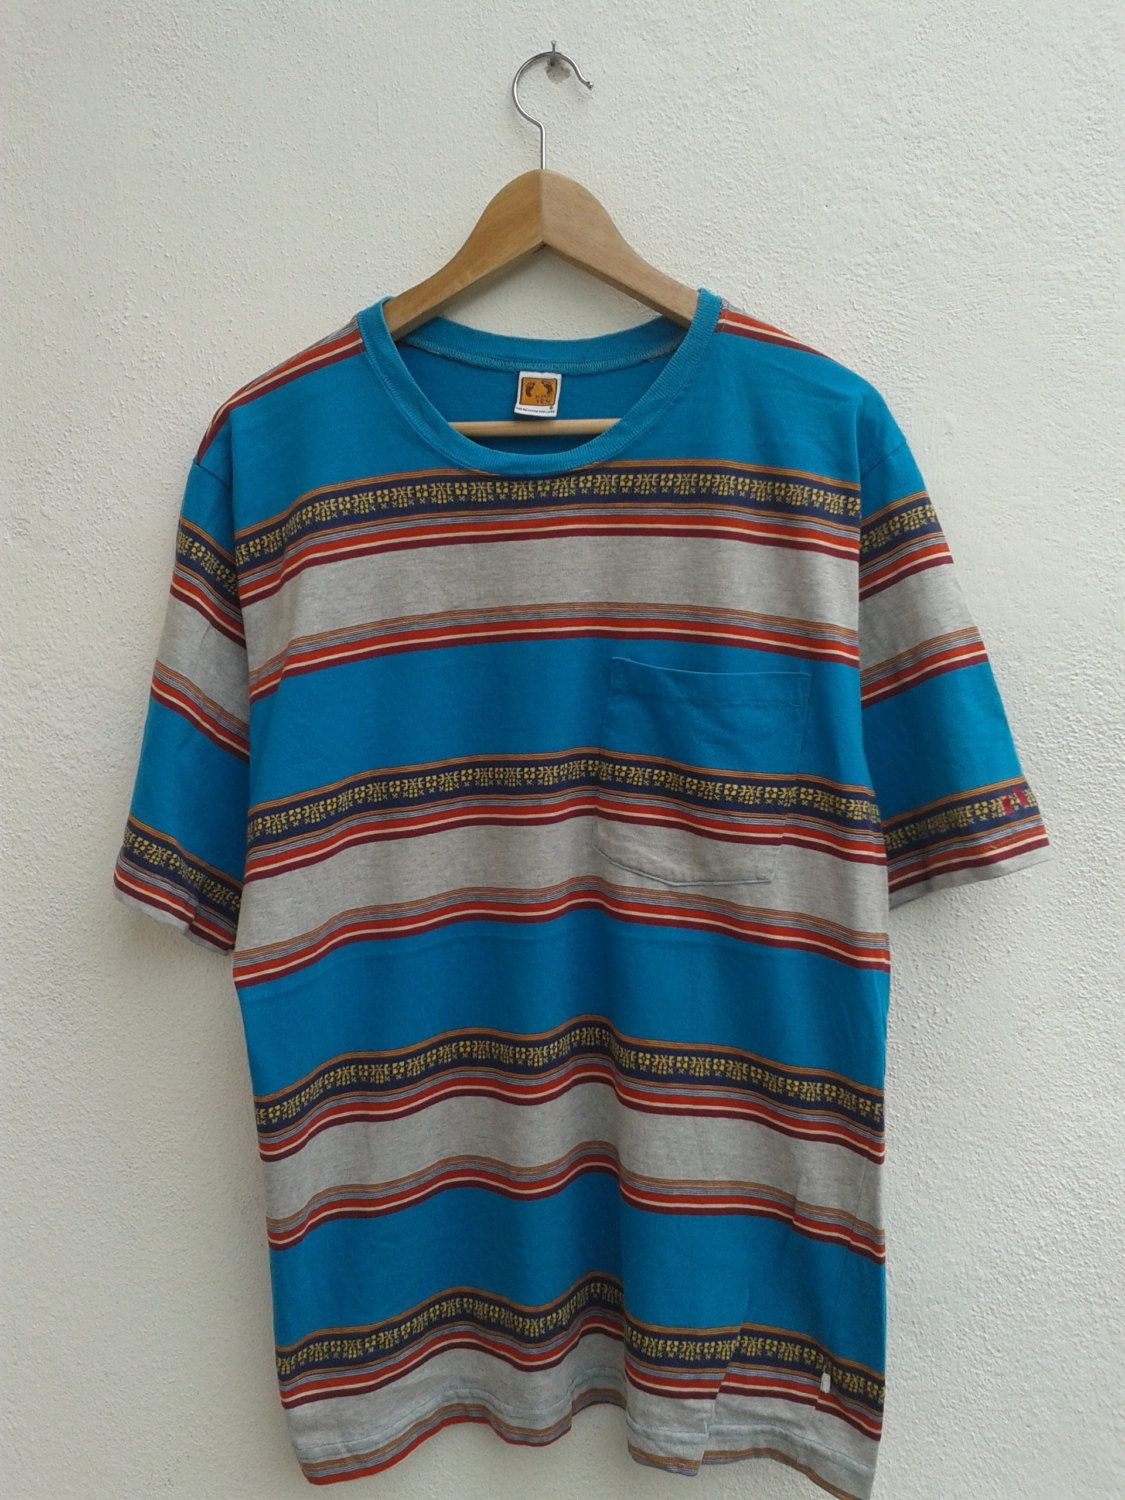 895acce211 SUMMER SALE Vintage 70s-80s Hang Ten Stripes Tribe Orange Tag Foot Print  Surfing Gear Pocket T-Shirt - $67.92 USD